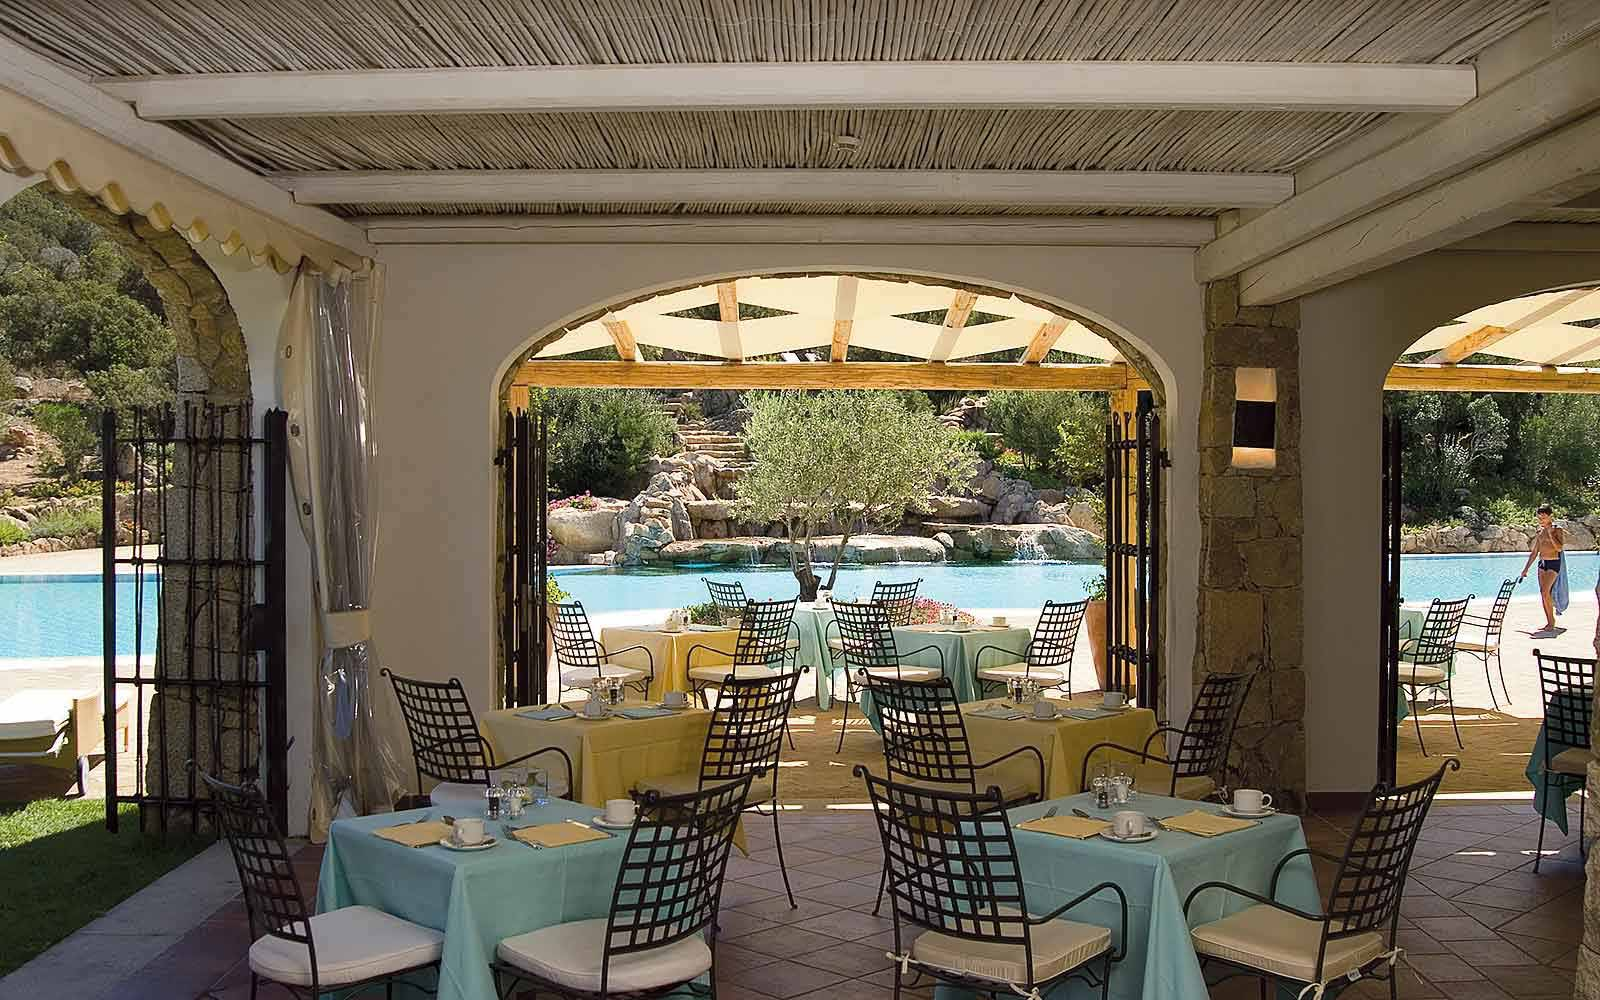 Le Piscine Restaurant at Colonna Pevero Hotel